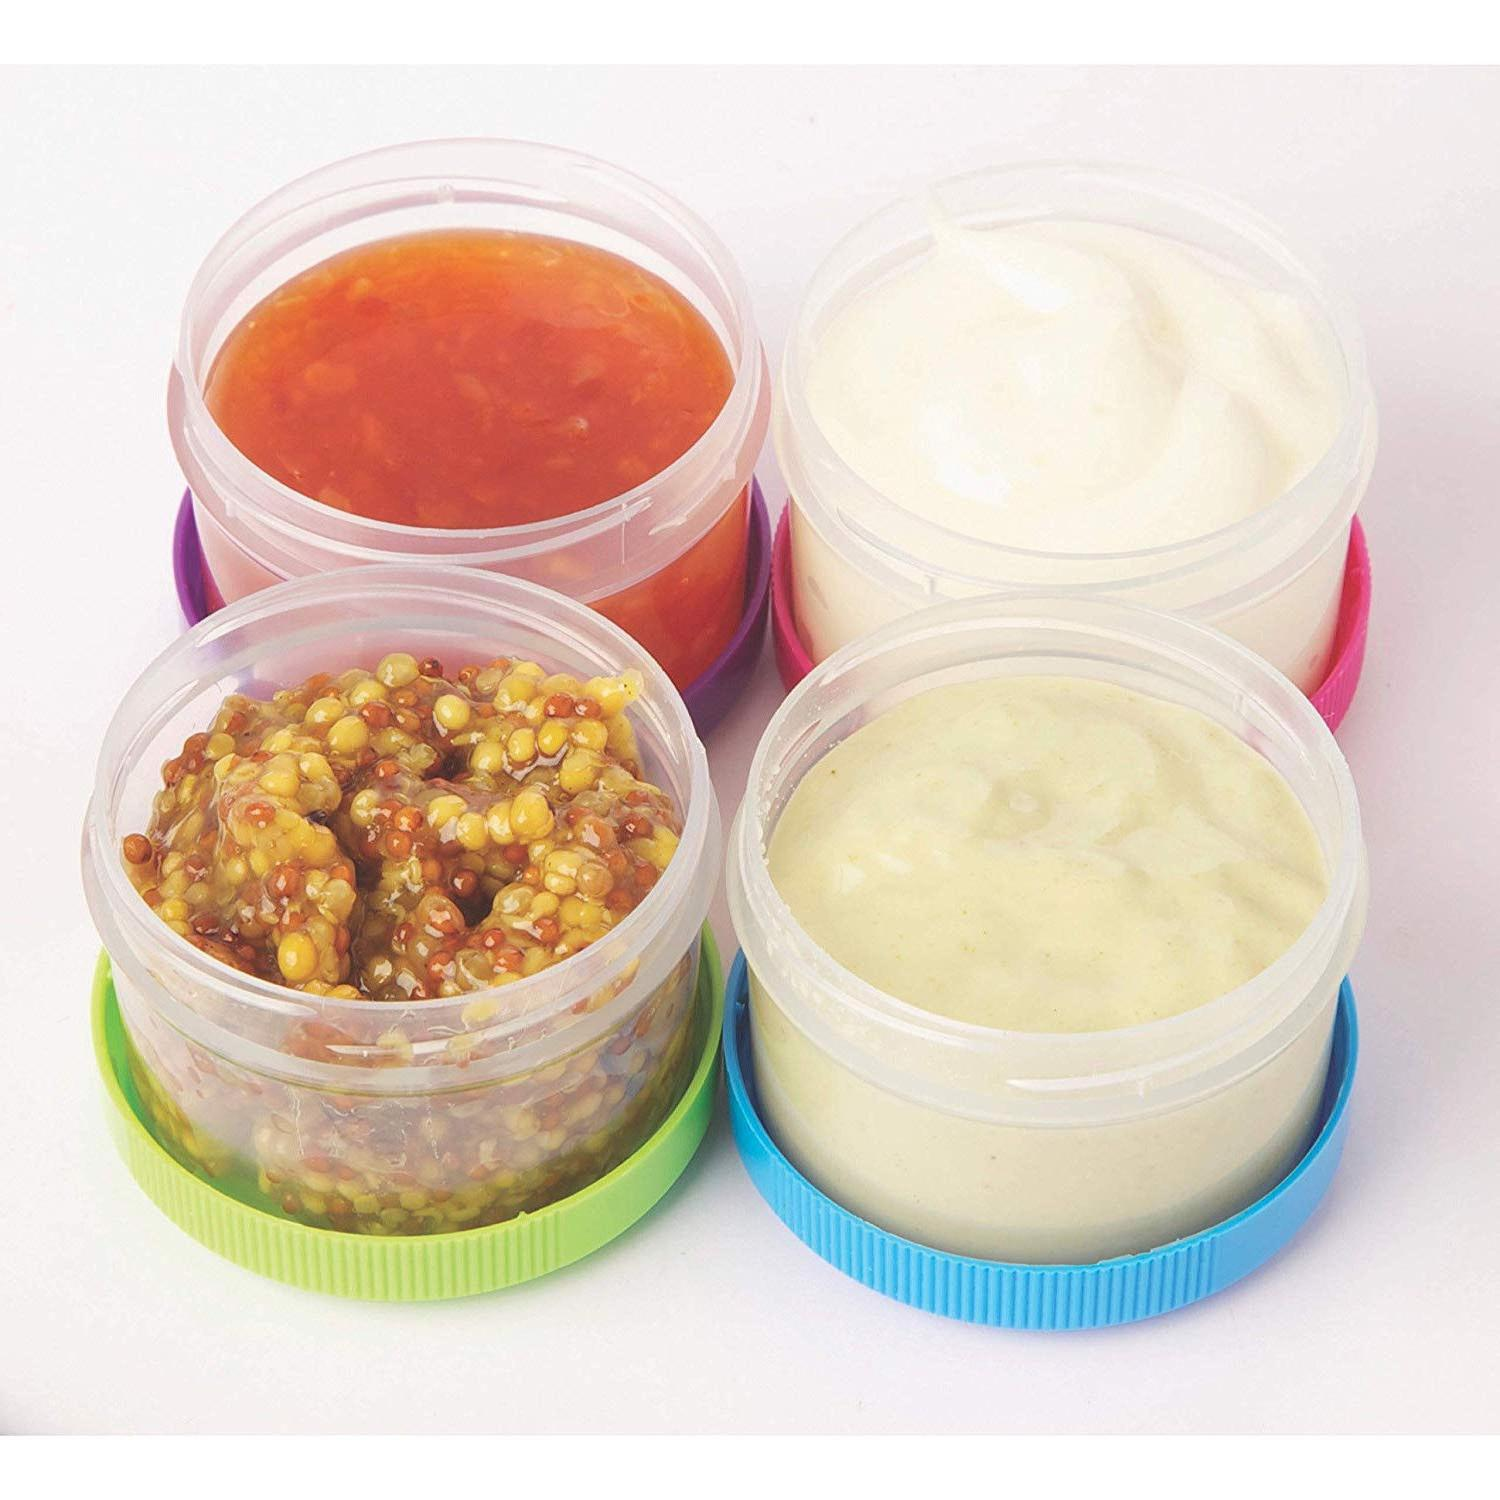 Salad Dressing Leak Proof Lid To go Plastic Cups